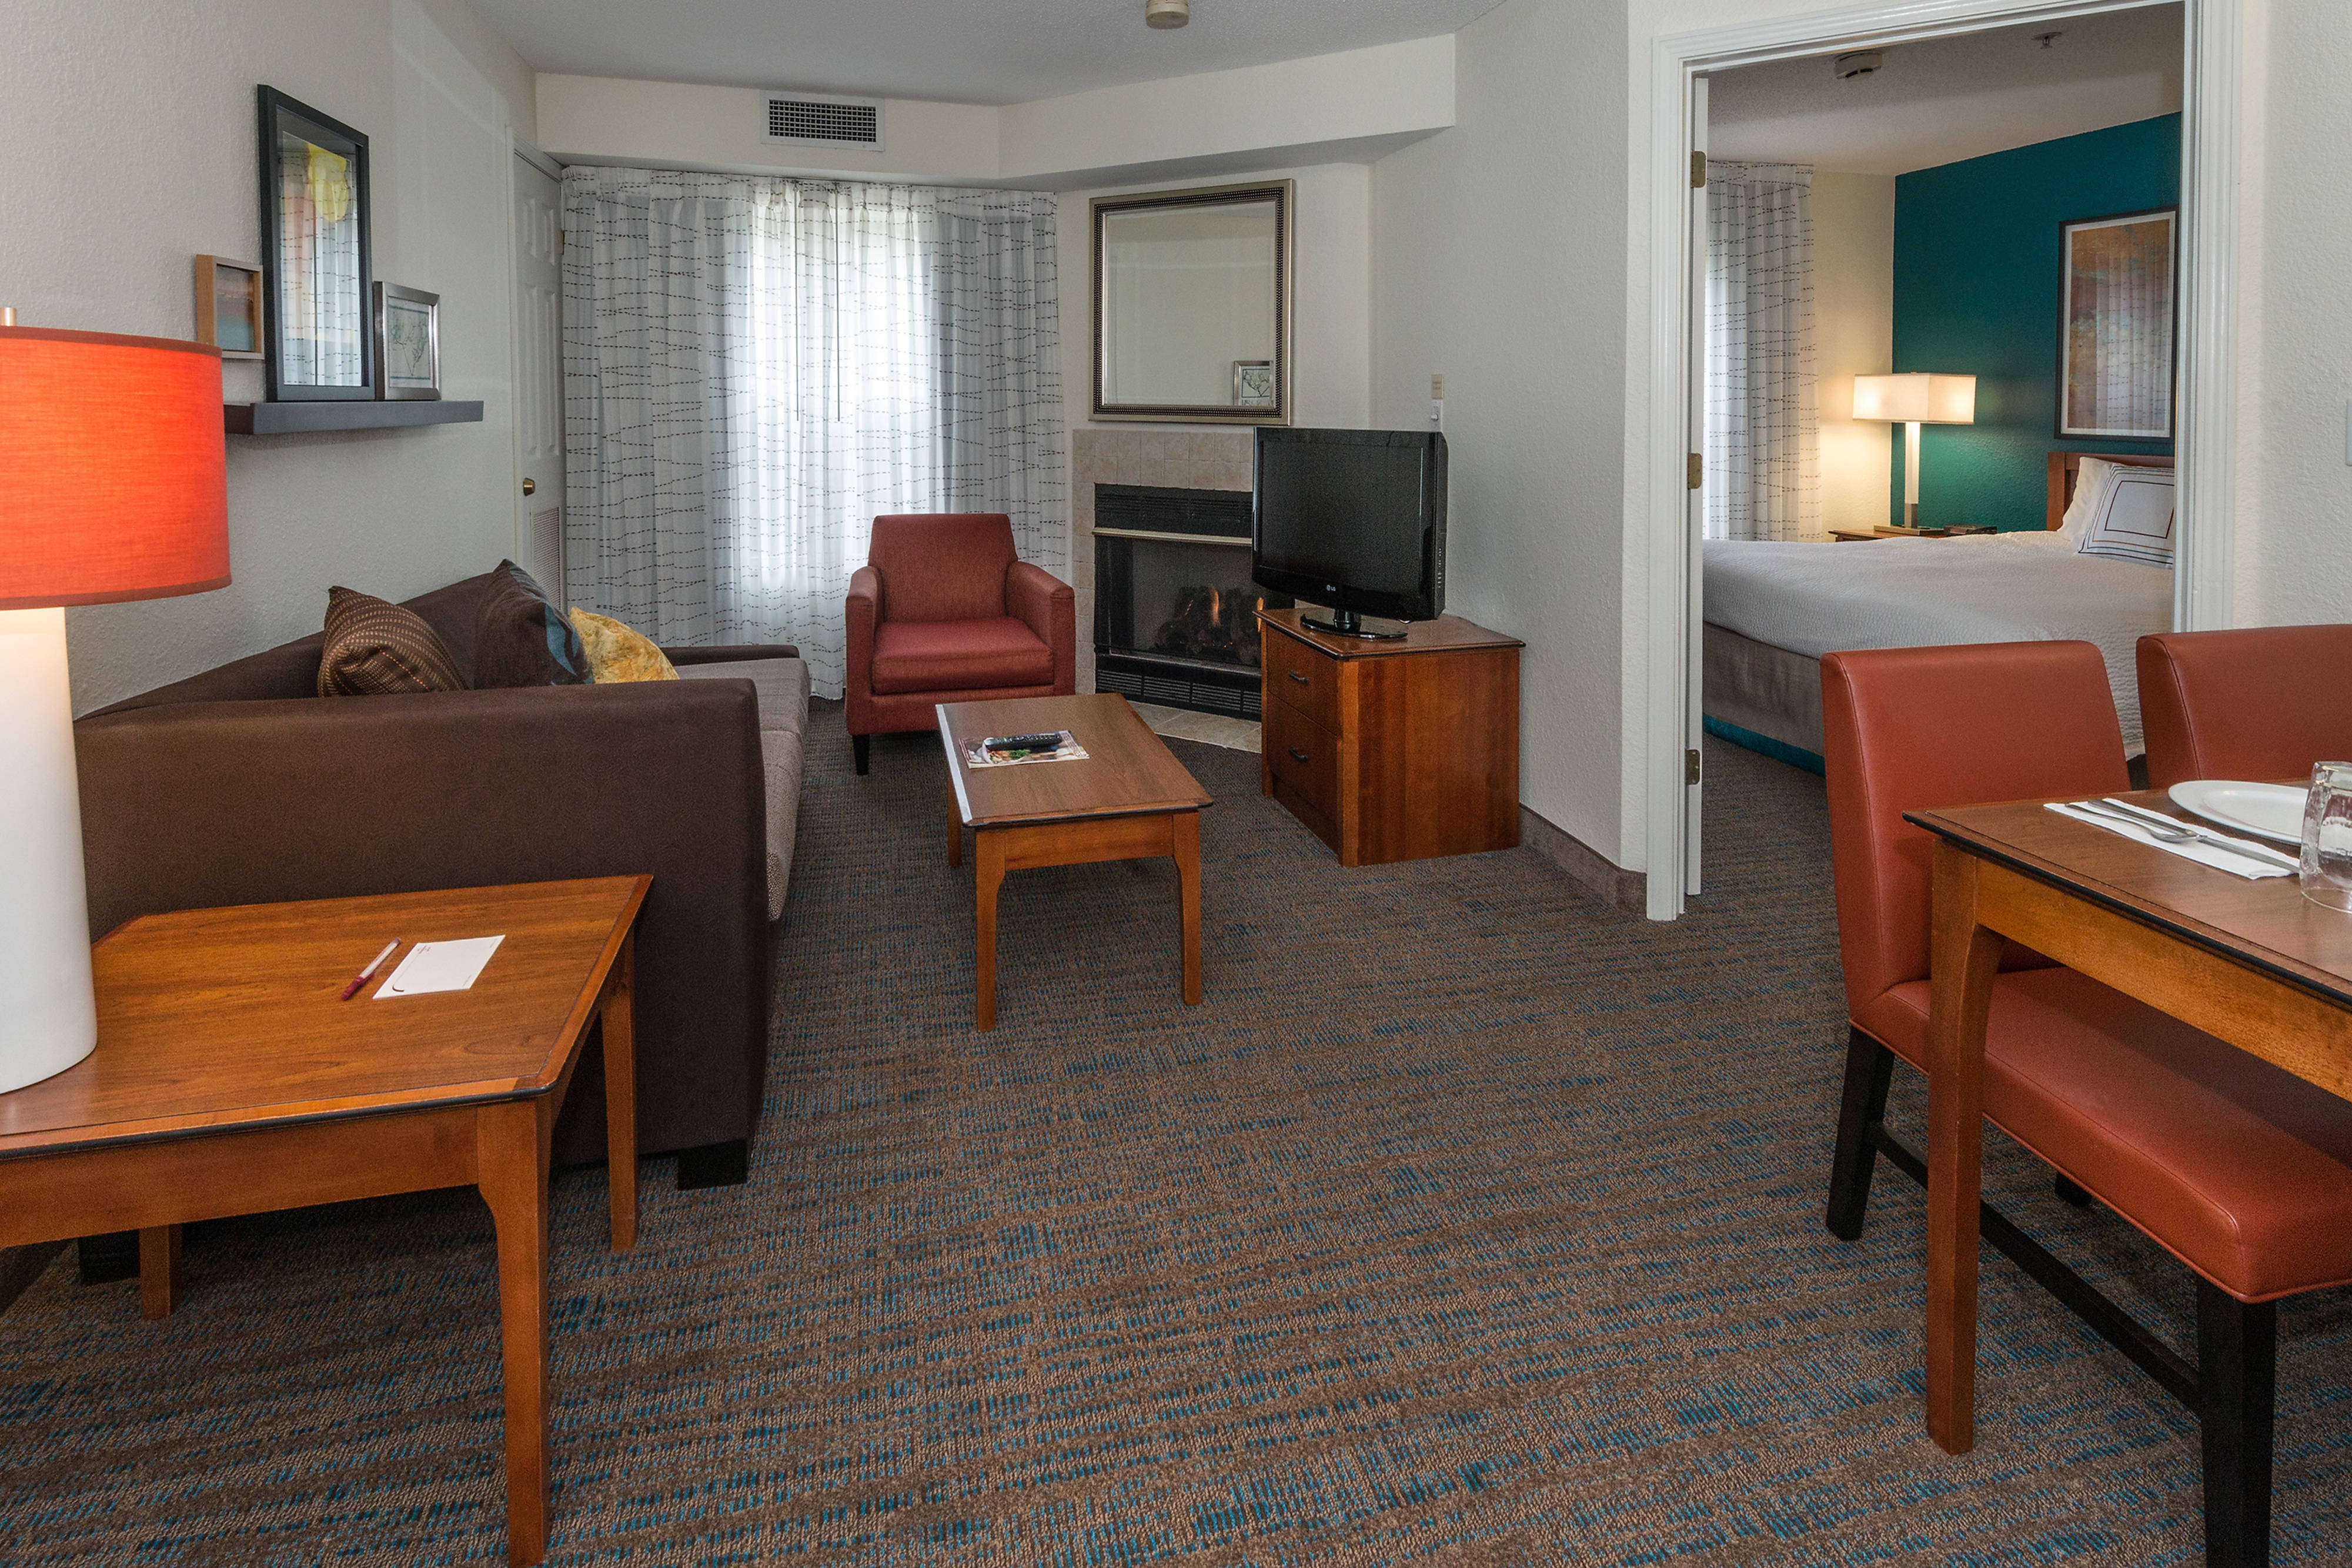 new louis orleans hotels downtown bedroom clsc highlights amenities suites room residence rooms hotel hor stlrd suite st in inn